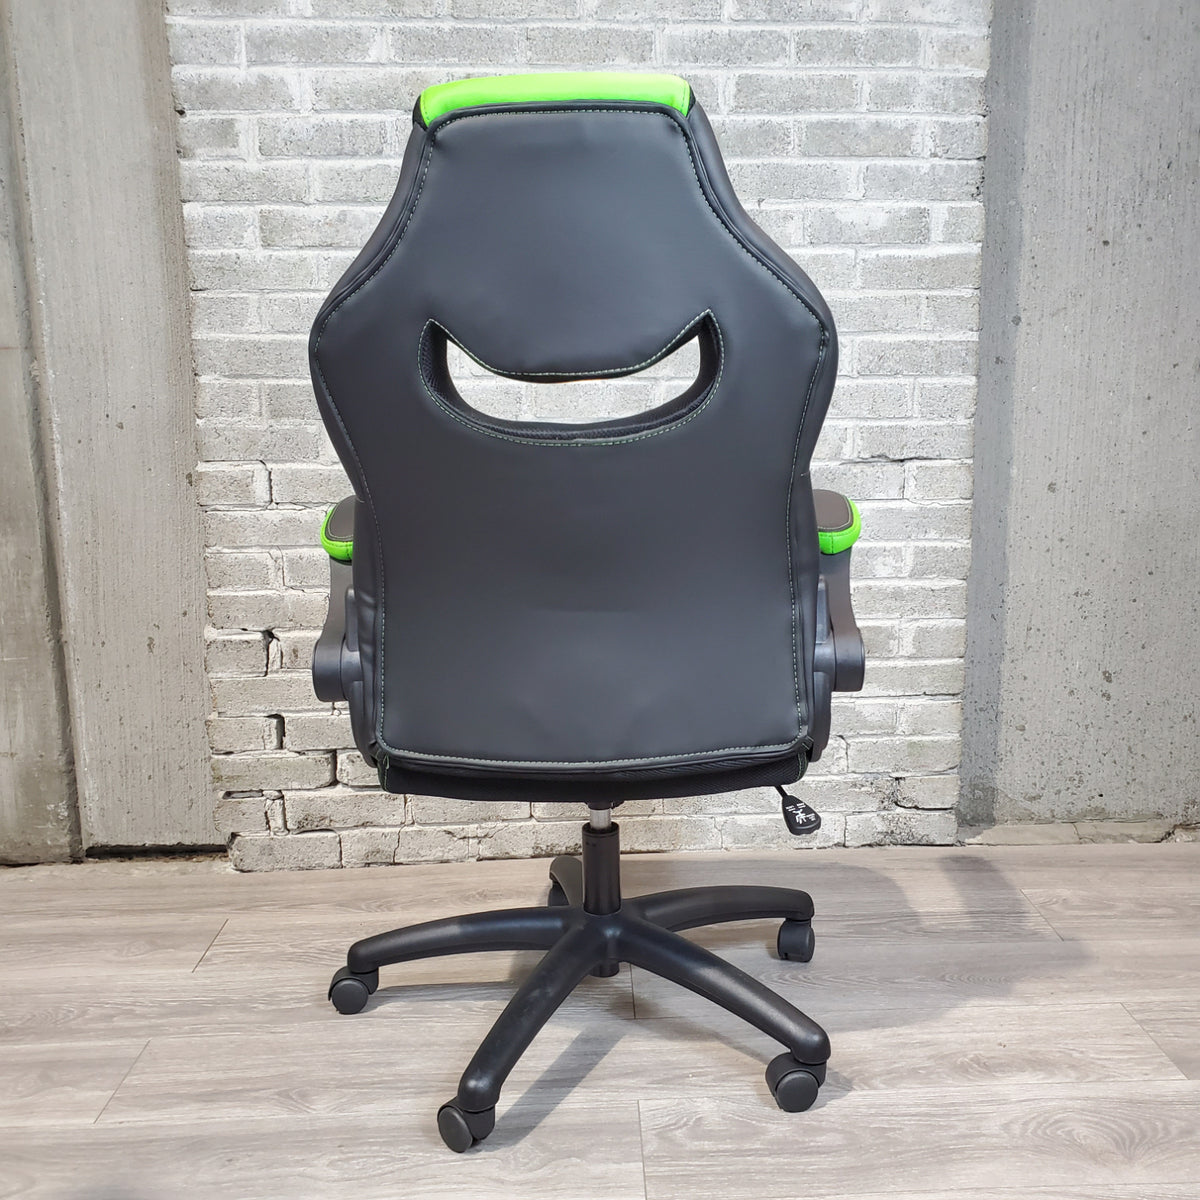 Pre-Owned - IN STOCK Sadie Racing Style Bonded Leather Gaming Chair, Black/Green SPECIAL! - Duckys Office Furniture